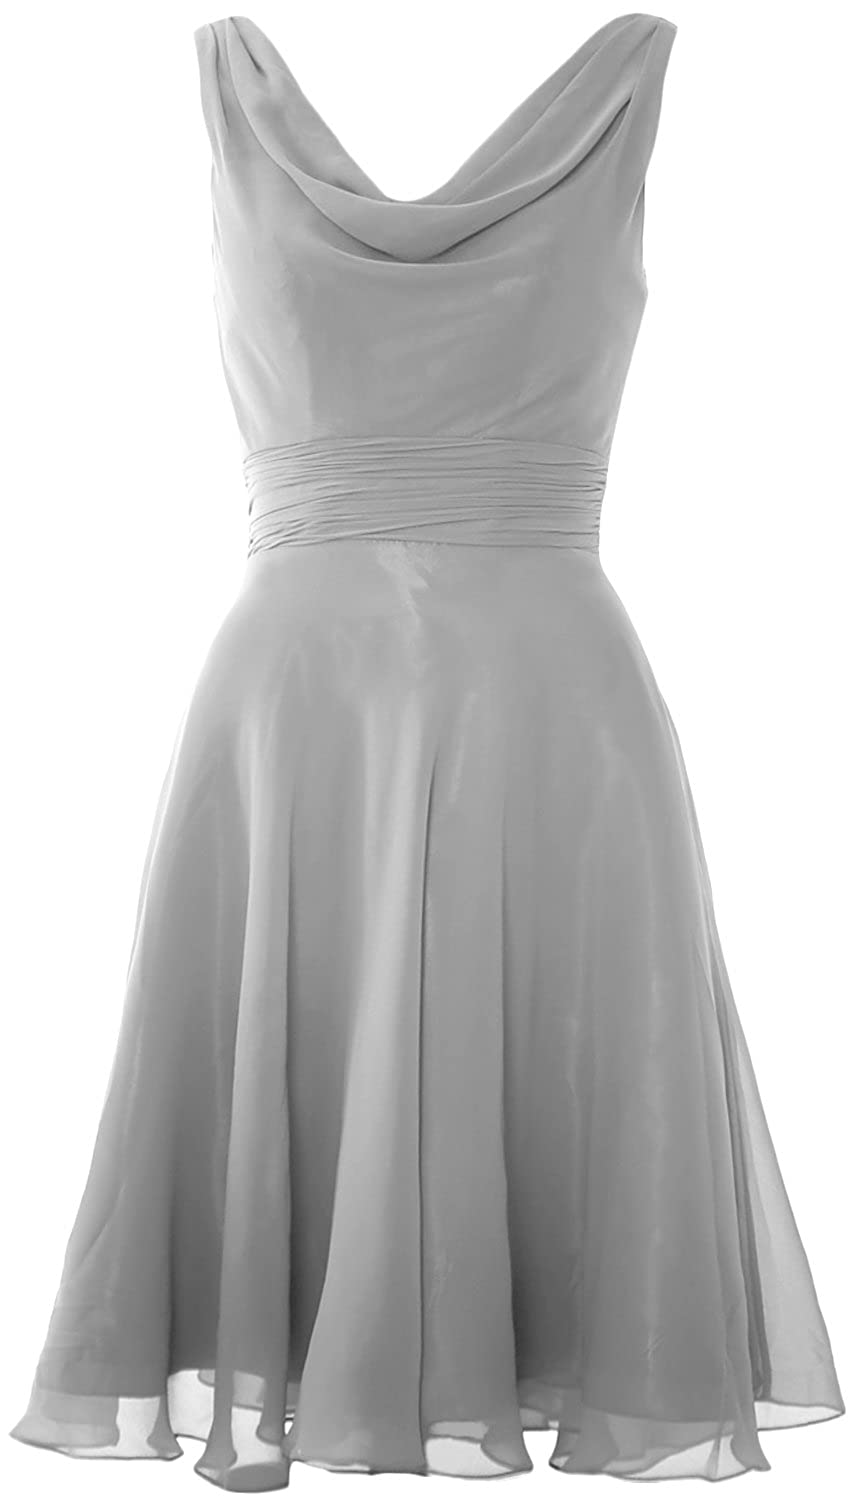 MACloth Women Cowl Neck Short Cocktail Dress Wedding Party Bridesmaid Gown